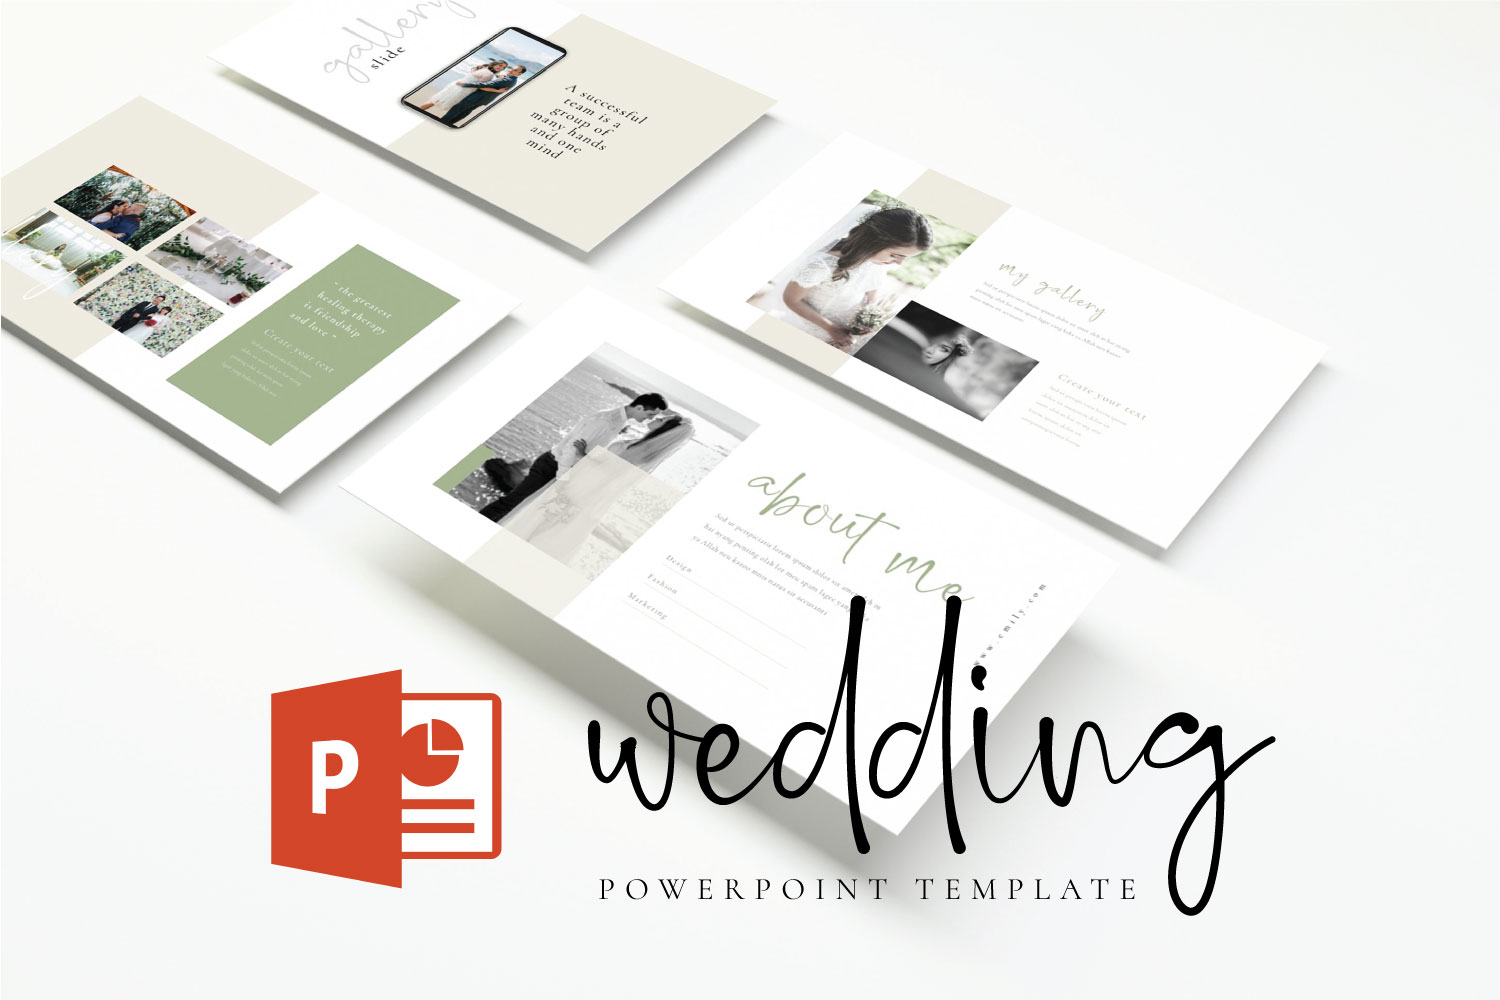 Wedding Powerpoint template example image 1